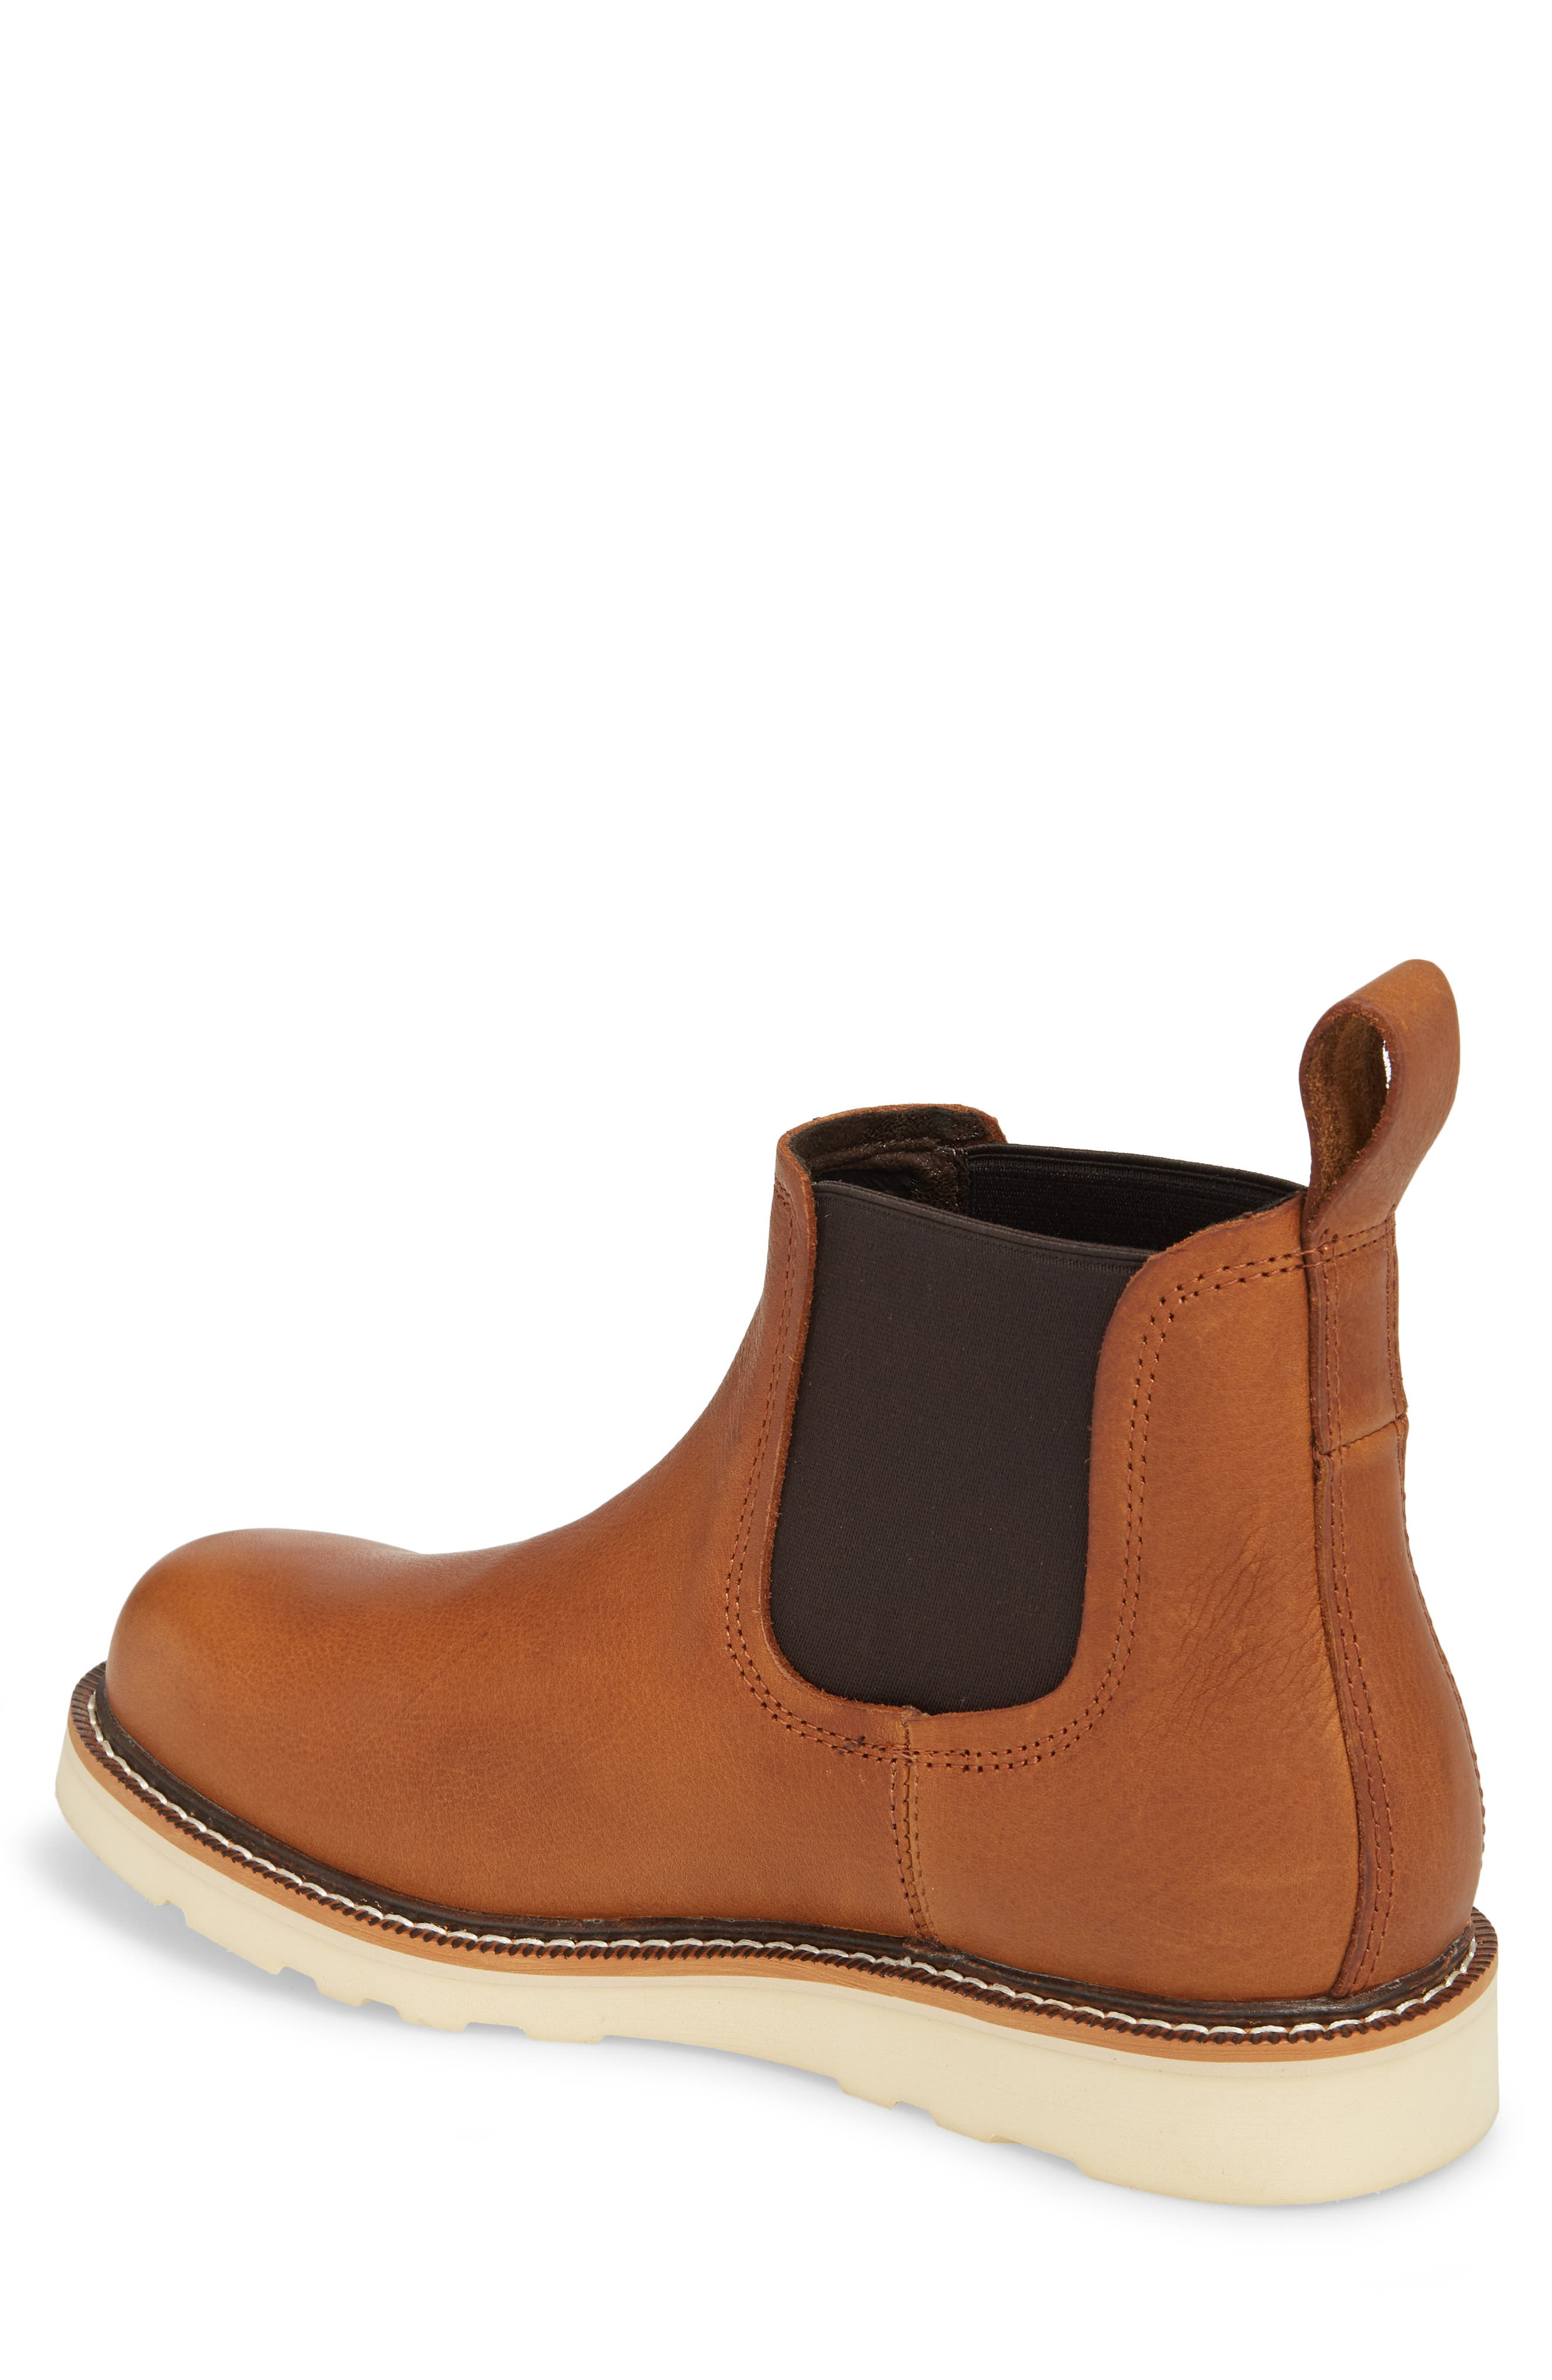 ARIAT, Rambler Recon Mid Chelsea Boot, Alternate thumbnail 2, color, GOLDEN GRIZZLY